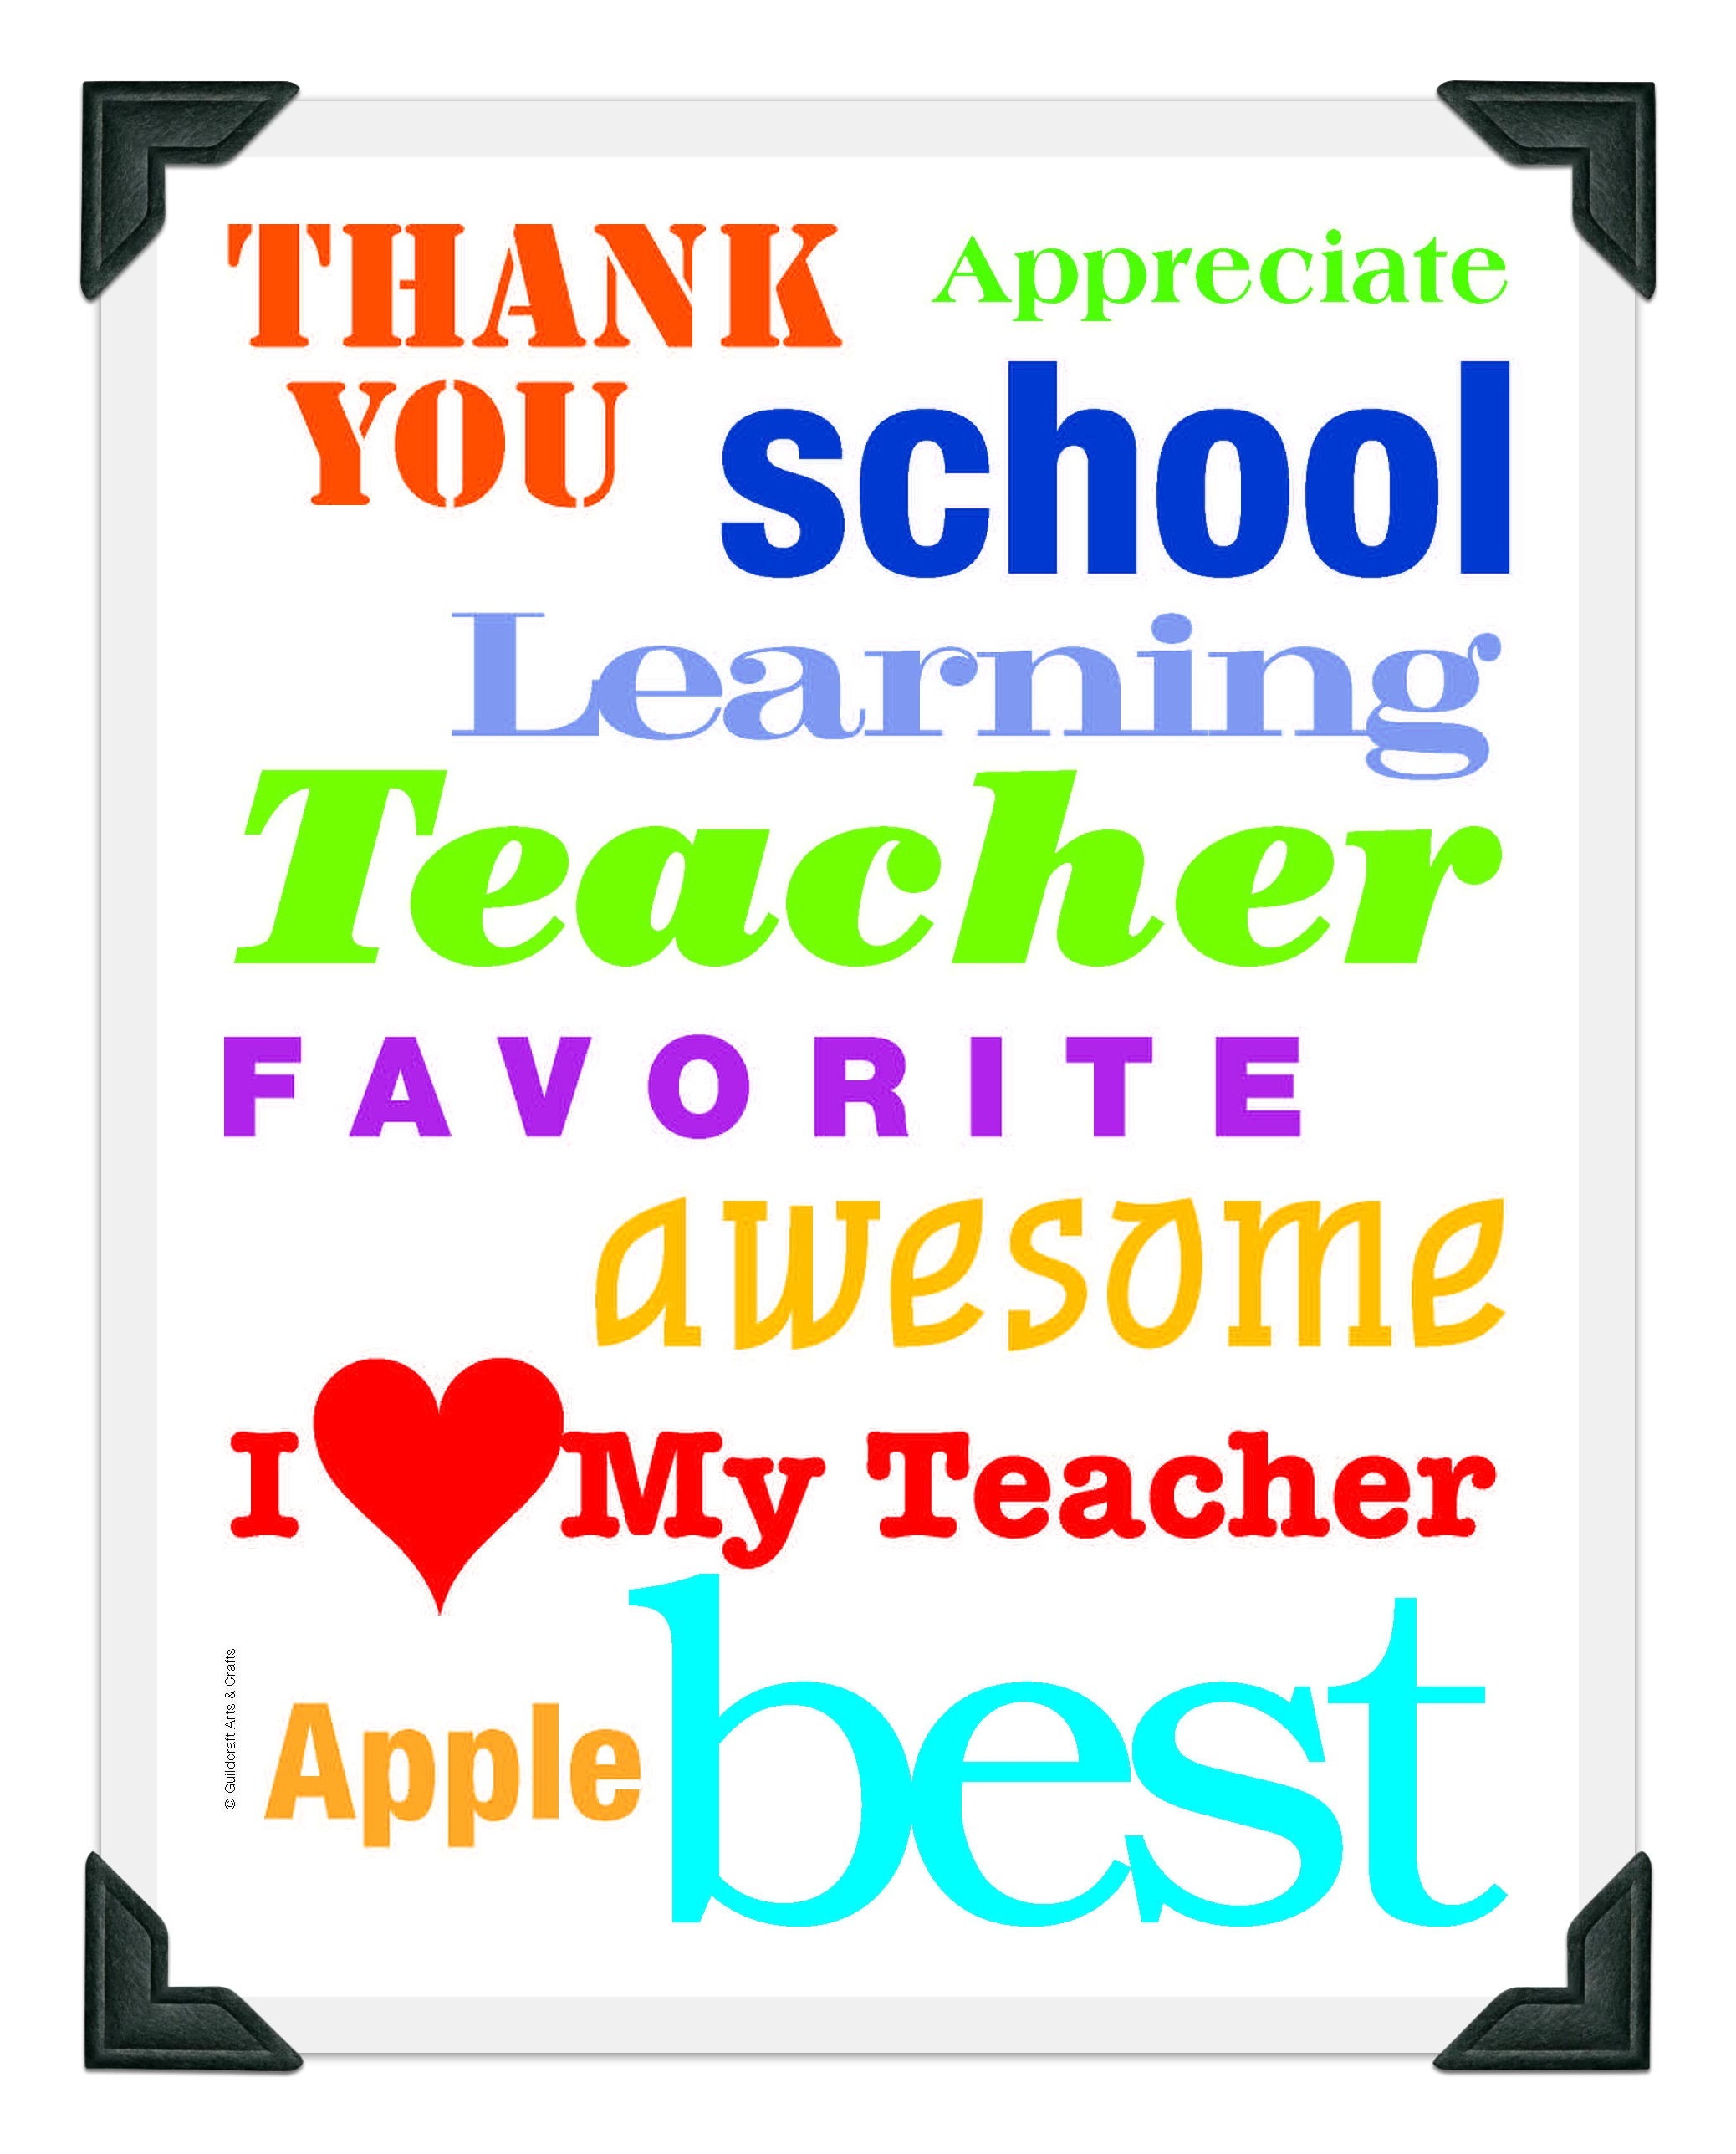 Teachers Day Quotes In English Images: Teacher Appreciation Week Quotes. QuotesGram